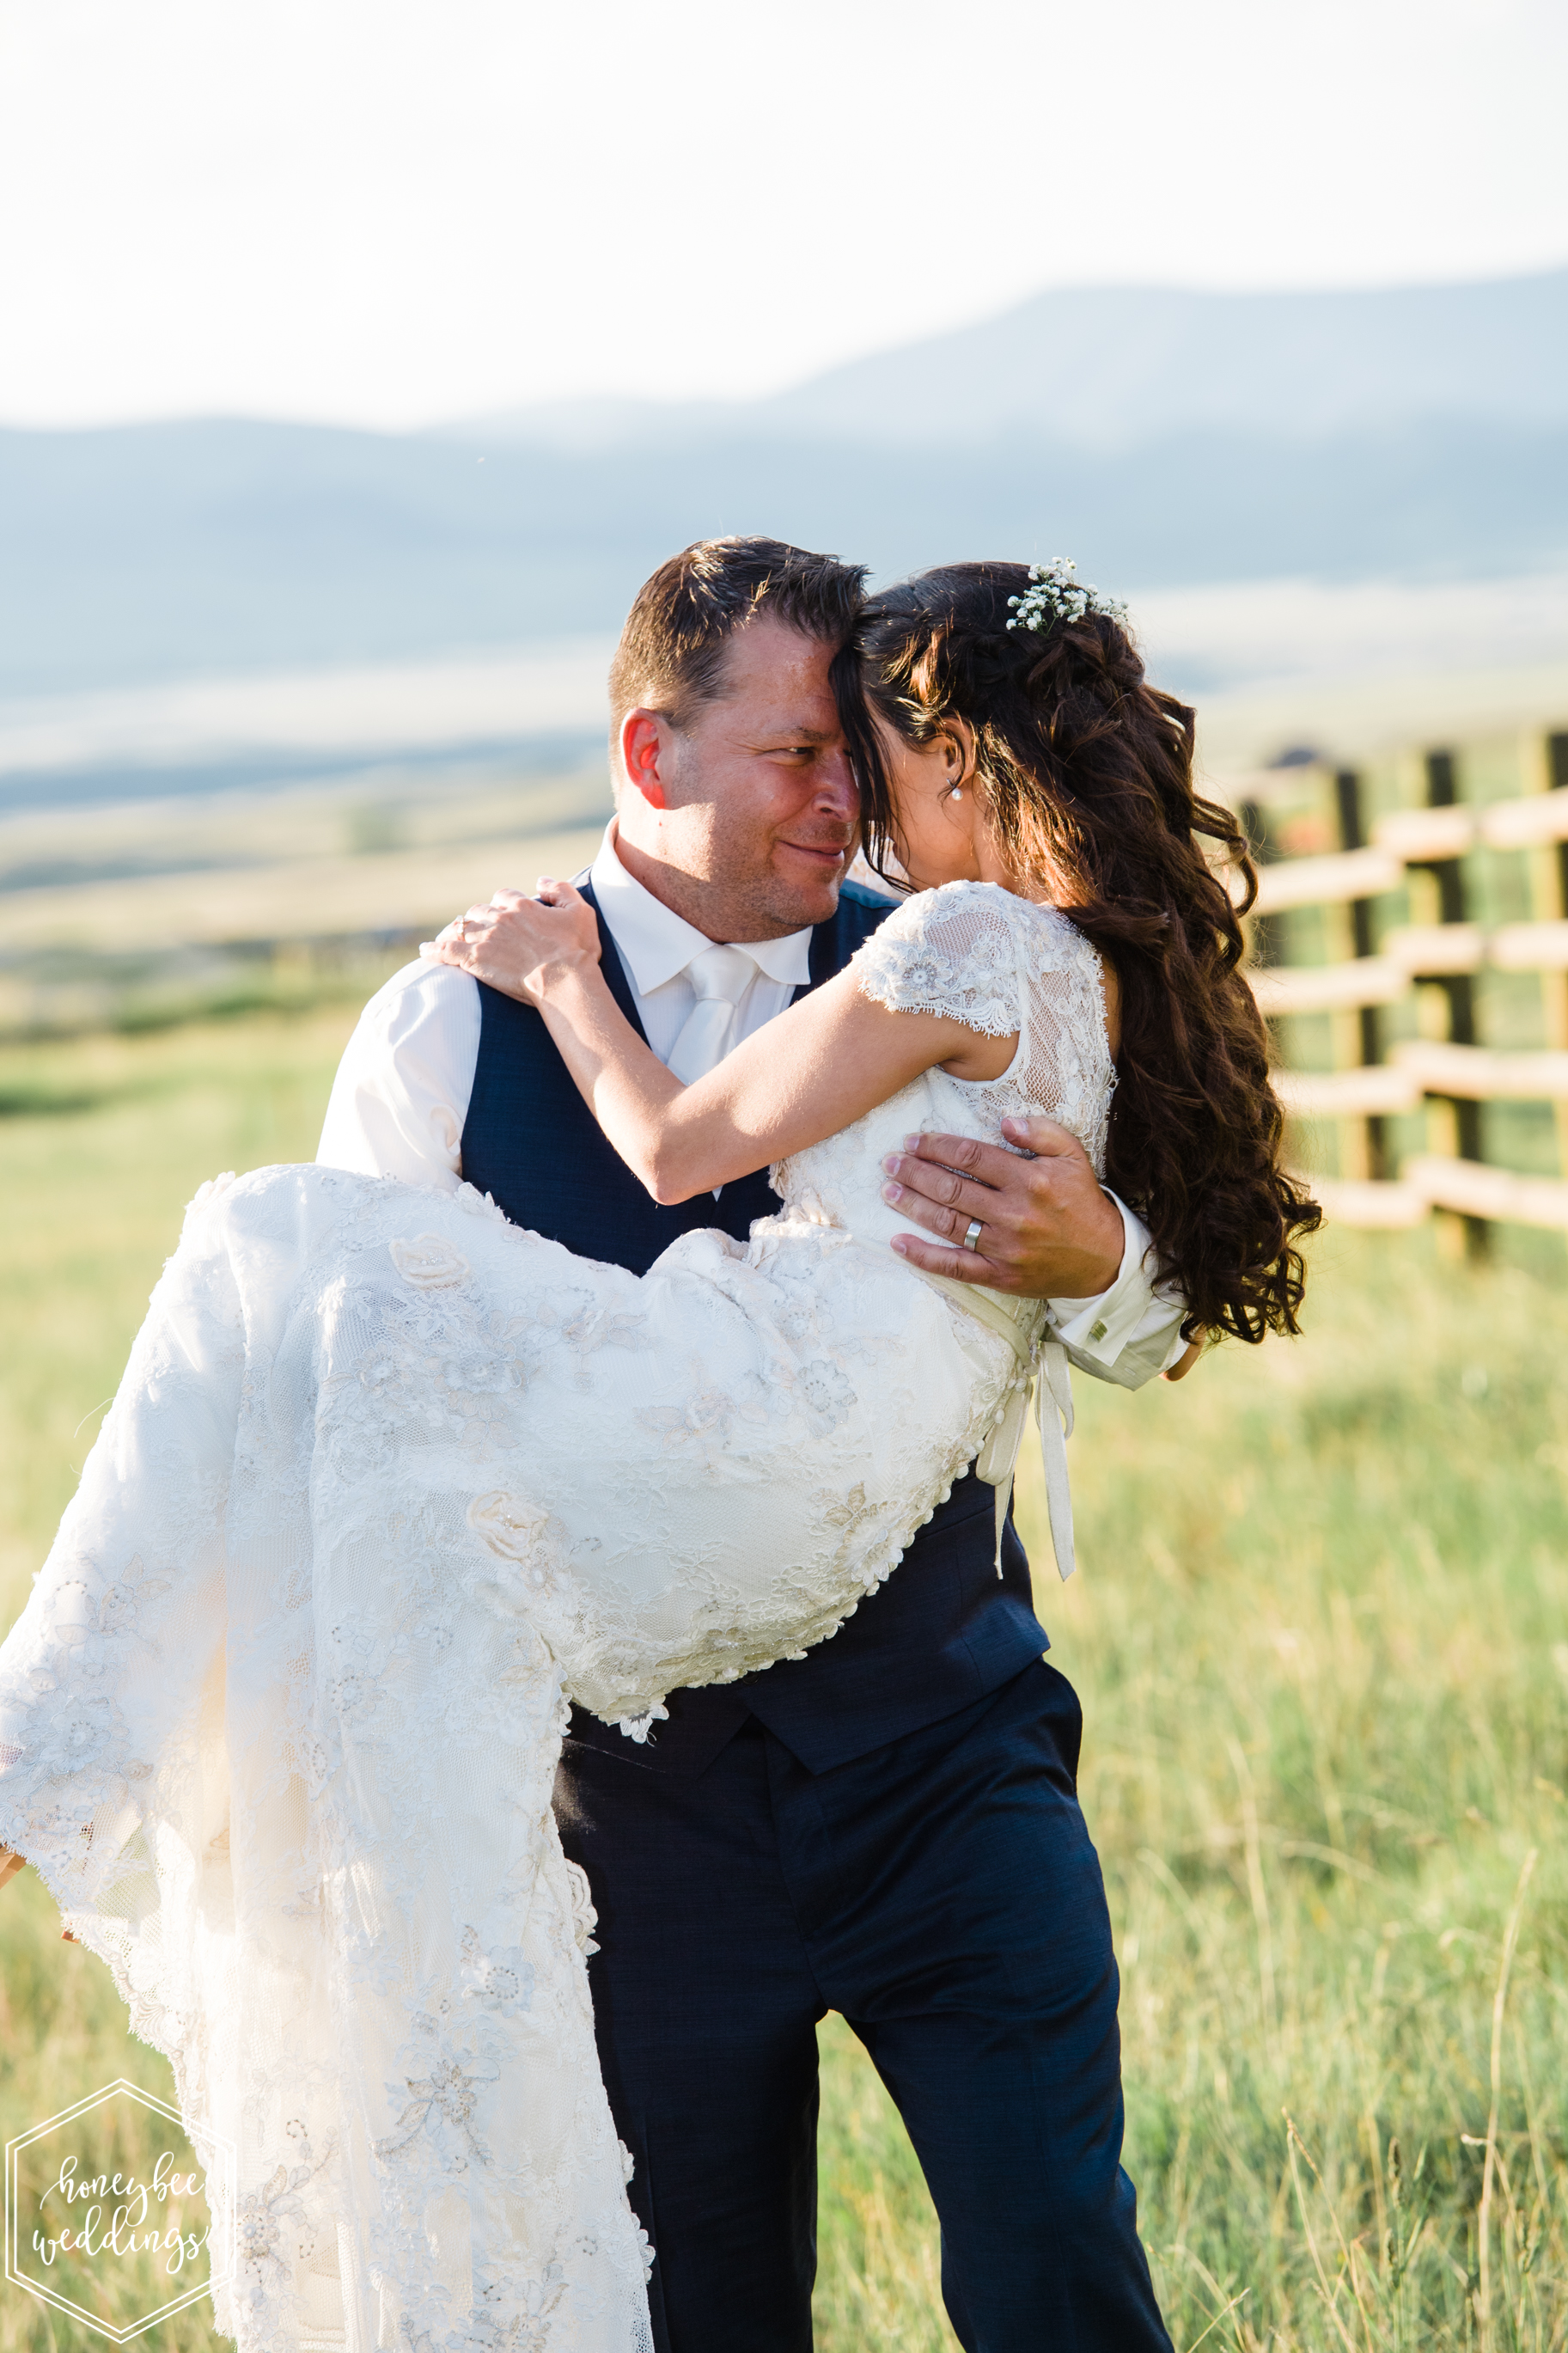 055Montana wedding photographer videographer_Chico hot springs wedding_Honeybee Weddings_Claudia & Bill_June 03, 2019-776.jpg